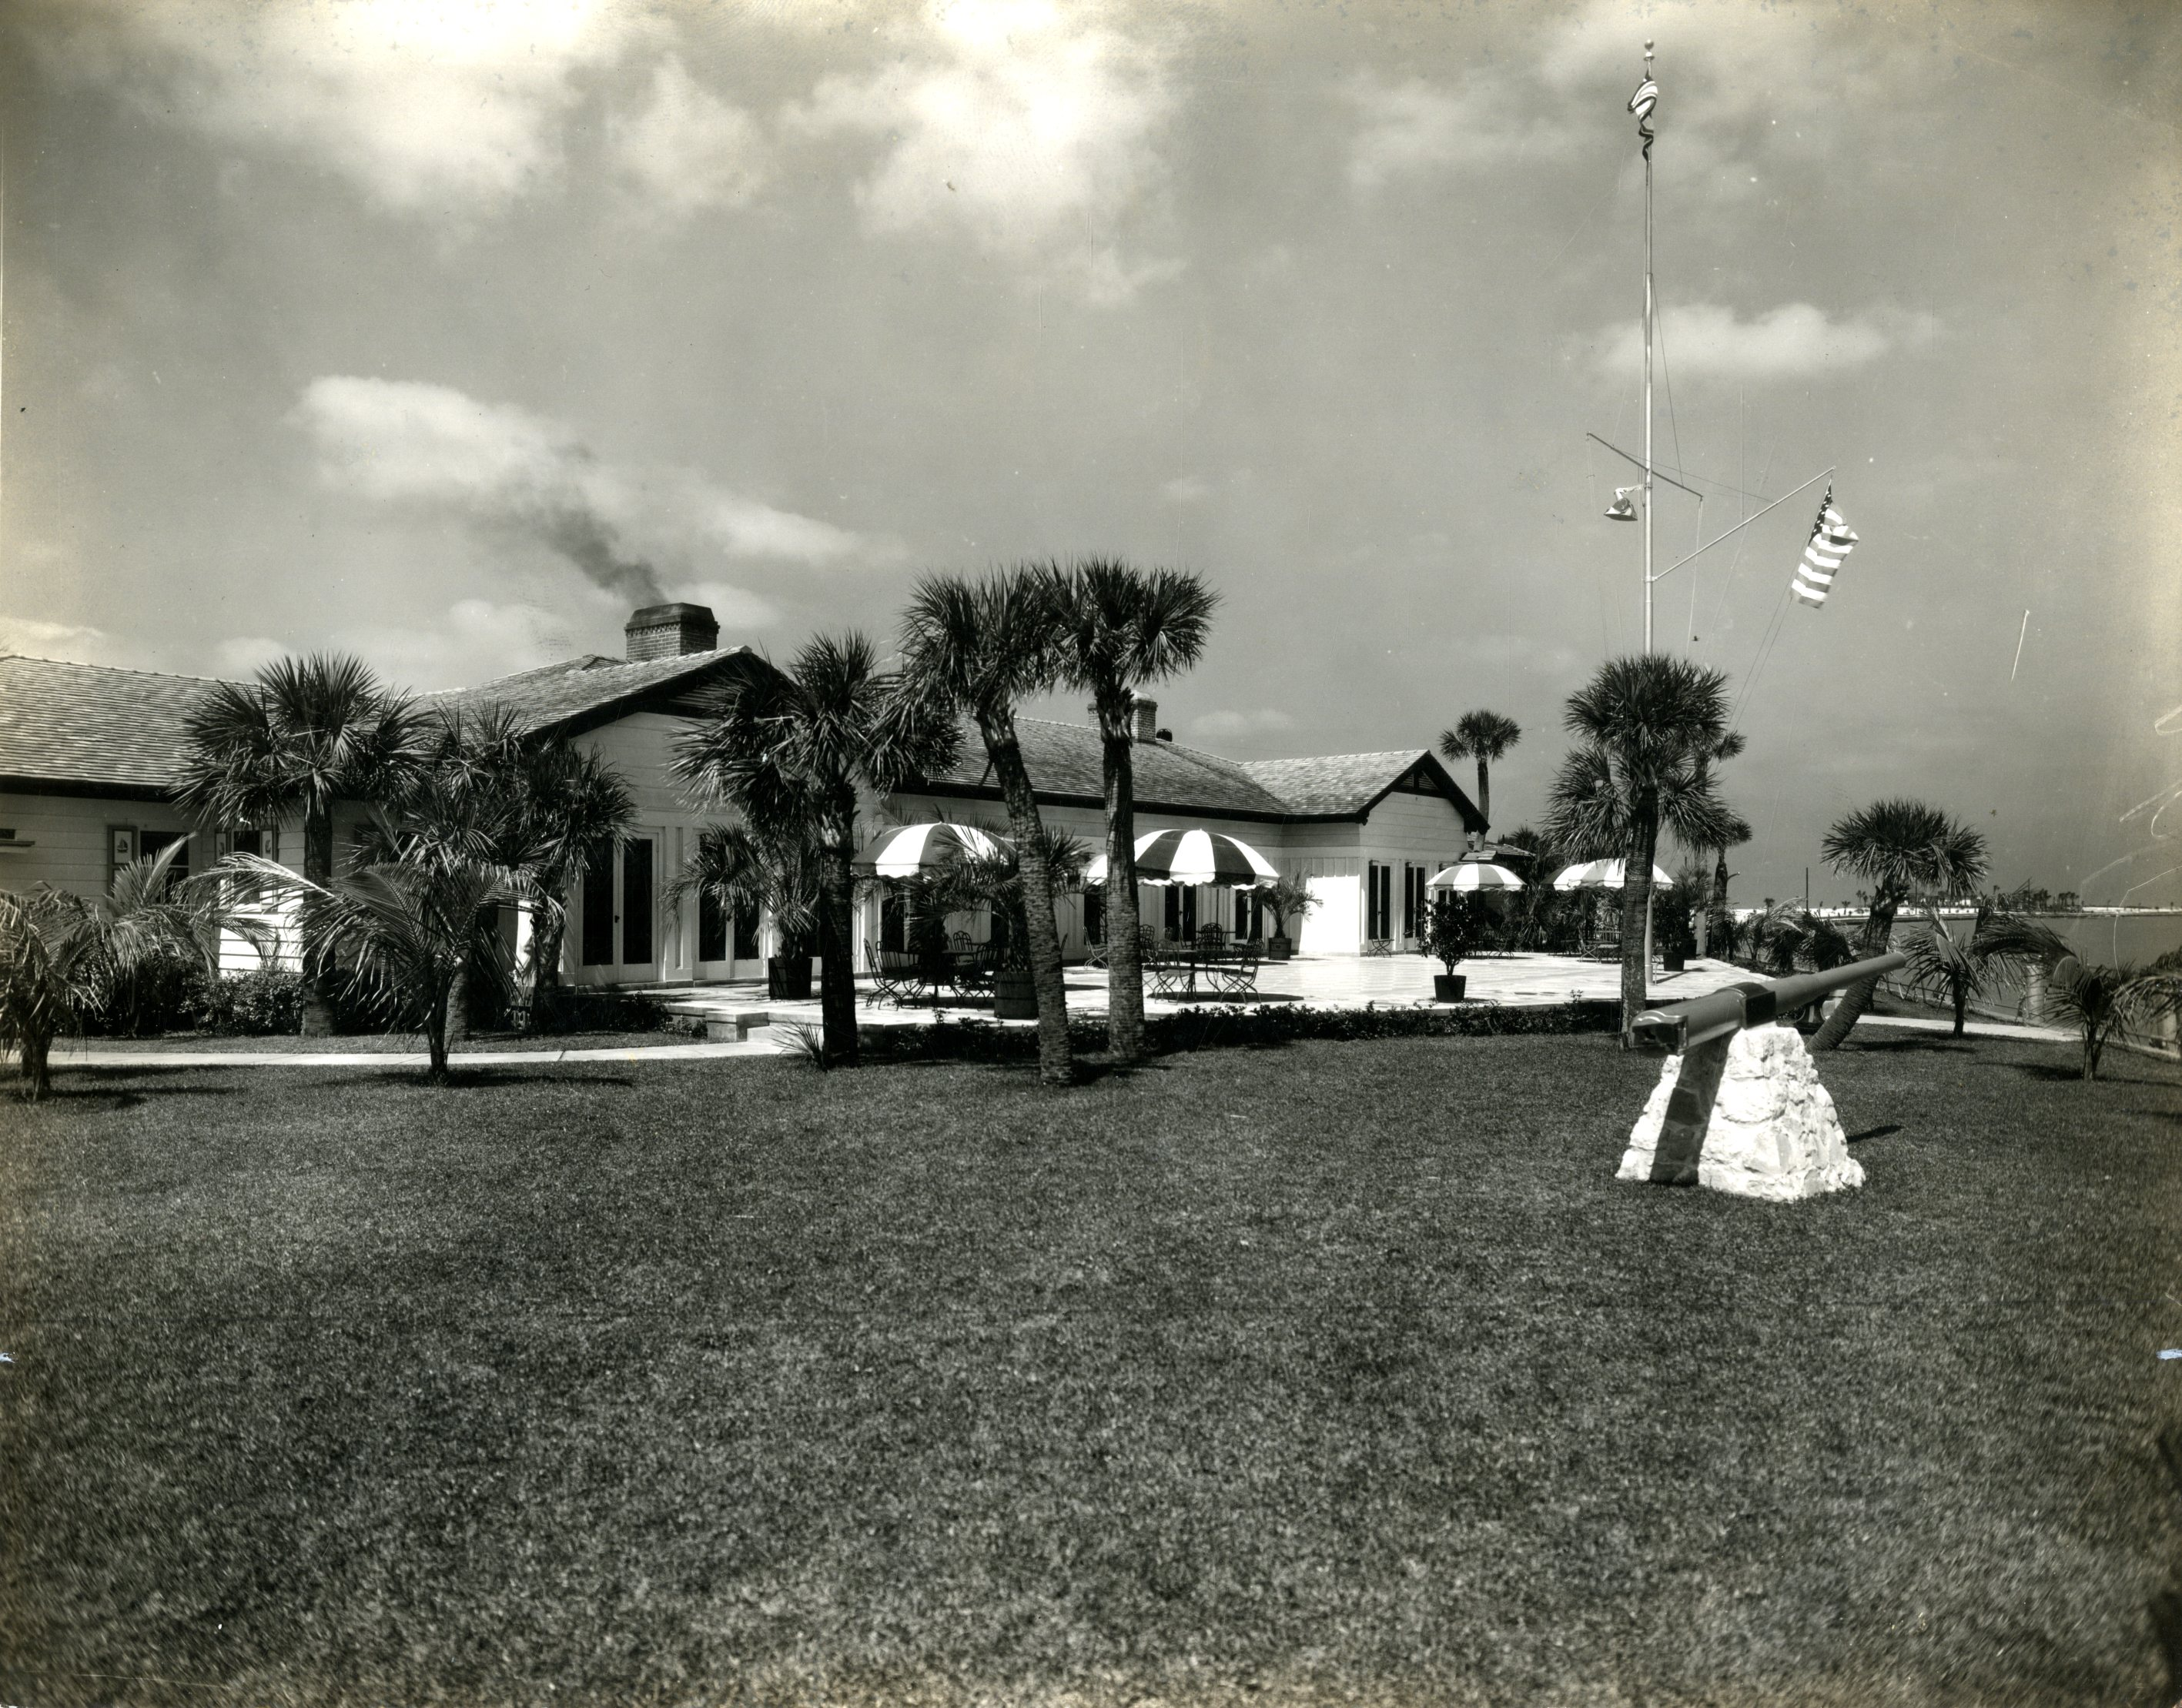 East view of Carlouel Yacht Club, Clearwater, Florida, undated.